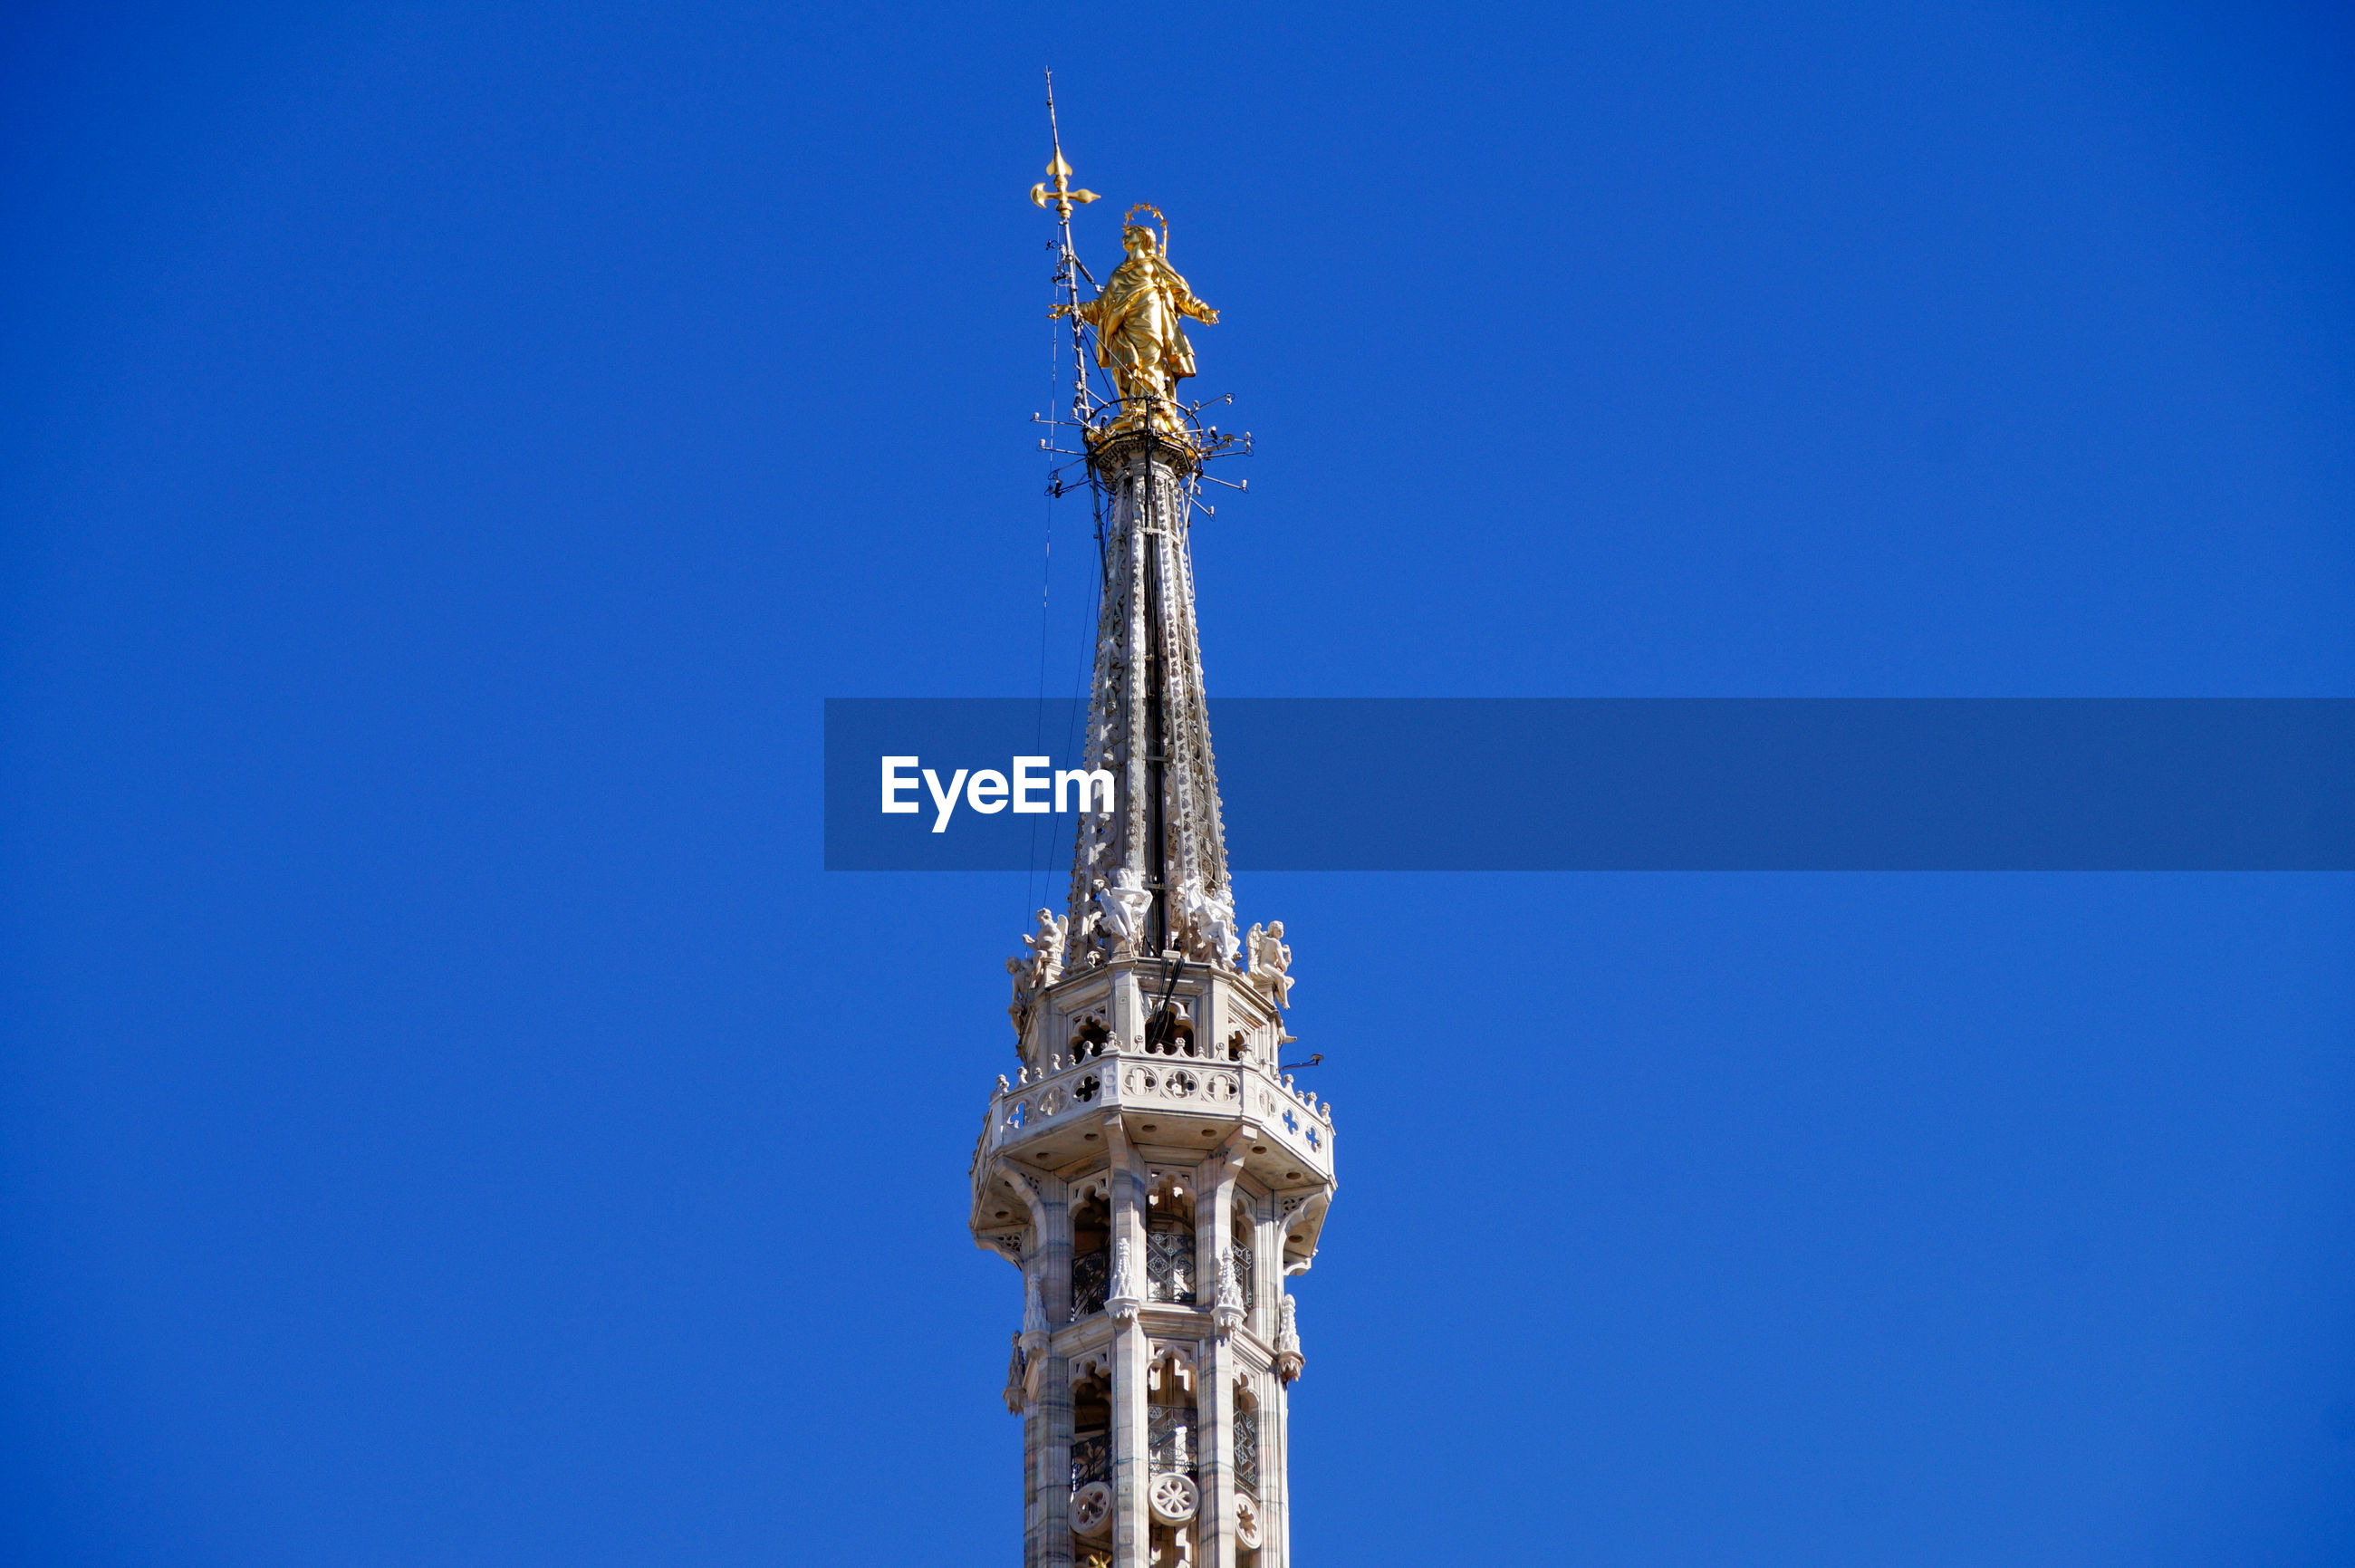 Low angle view of statue at duomo di milano against clear blue sky